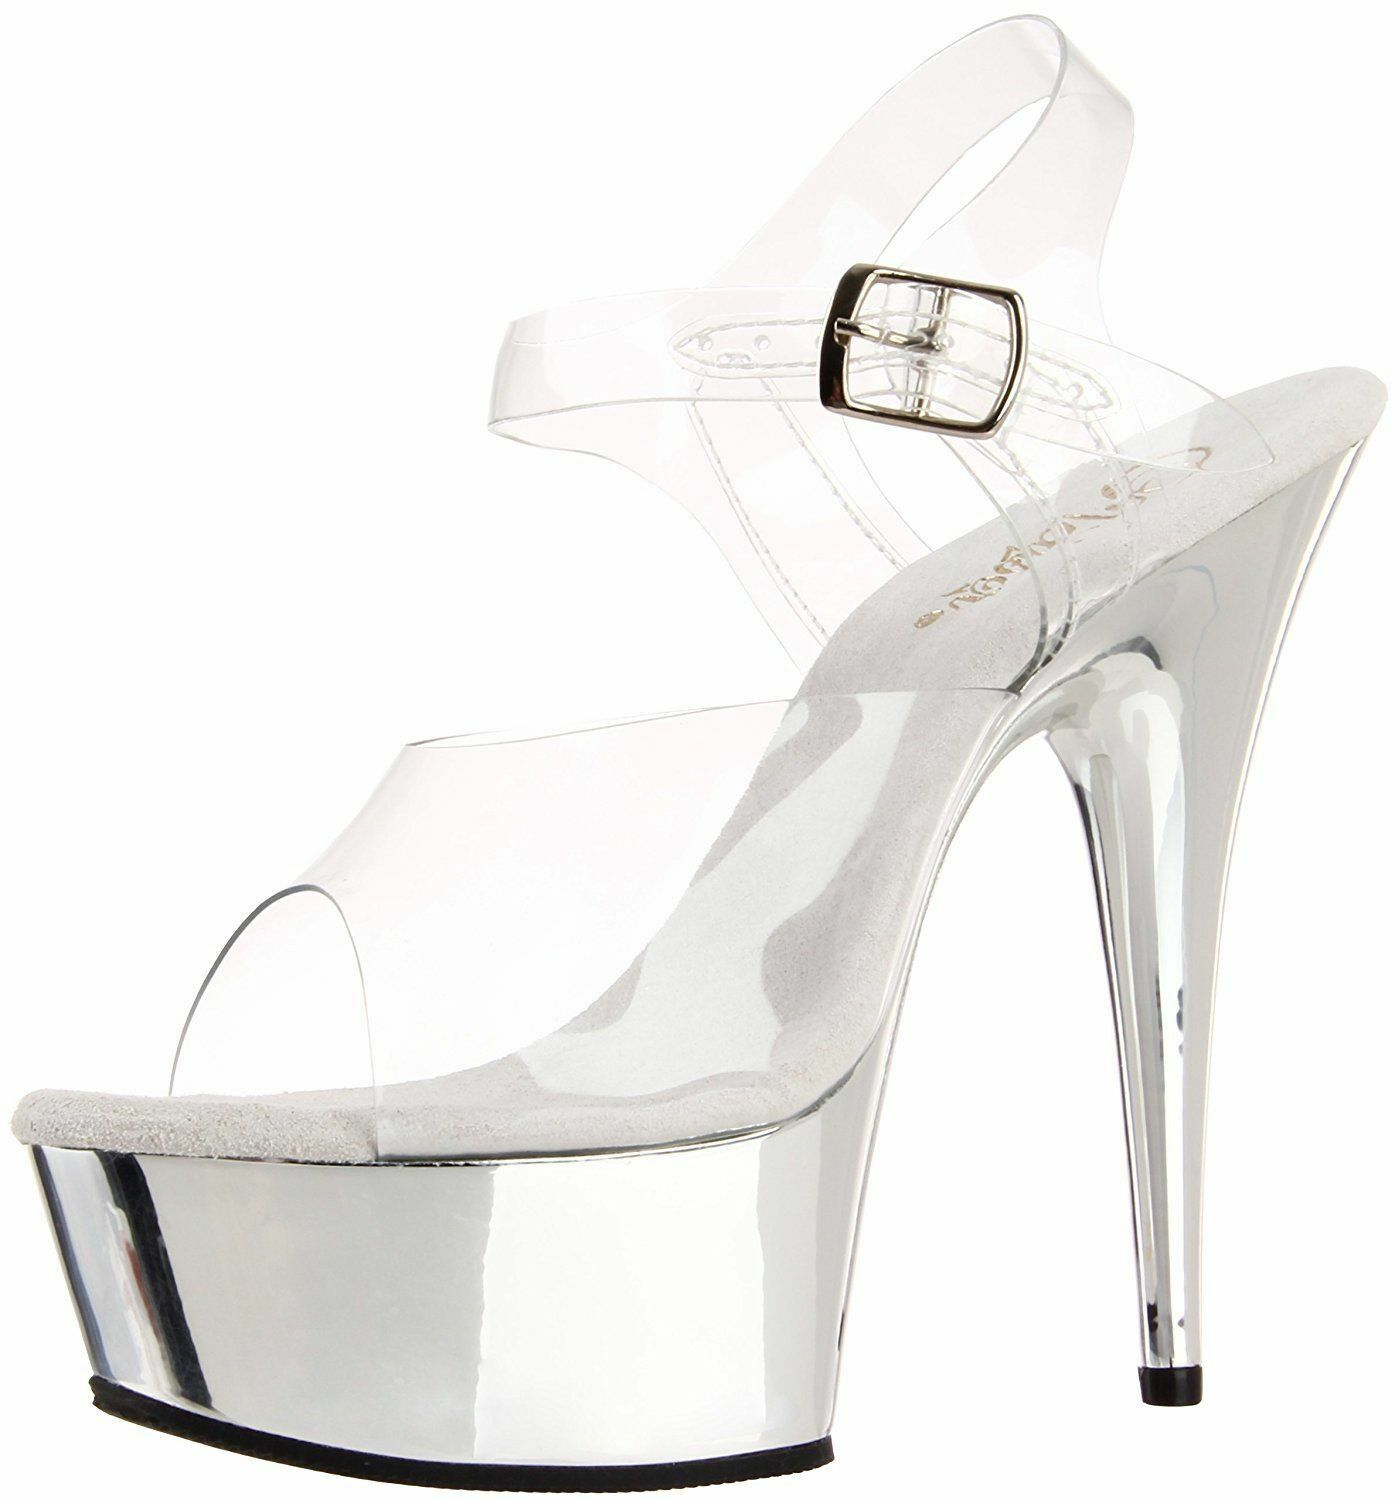 Pleaser Delight Damenschuhe UK 6 Clear Silver Silver Silver Chrome Platform Stiletto Heel Schuhes NEW 2872ee